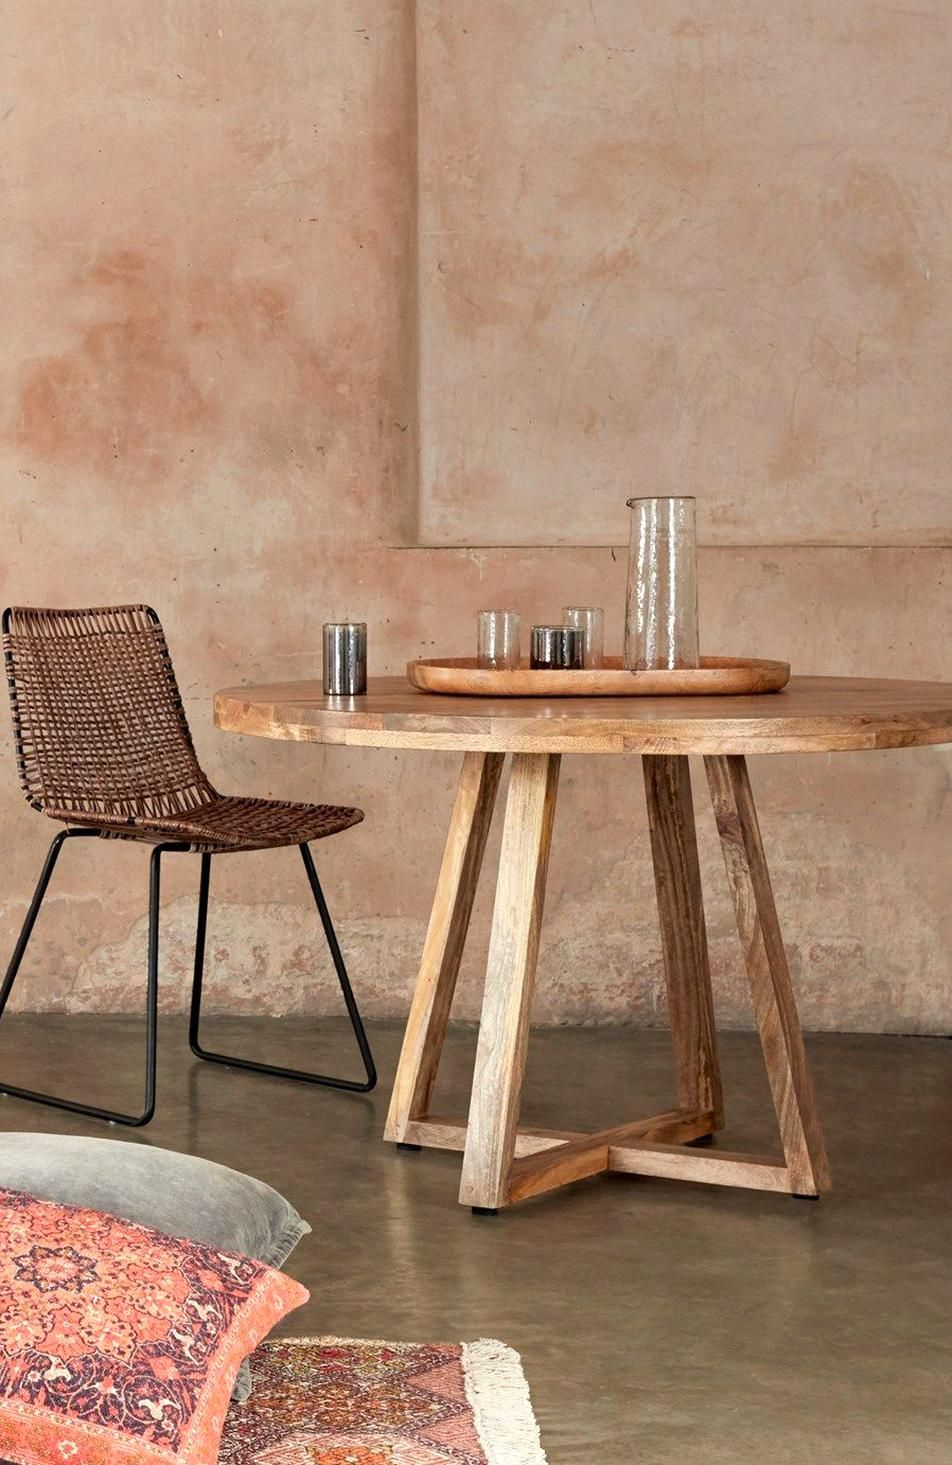 Round Wooden Dining Table Furniture French Connection In 2020